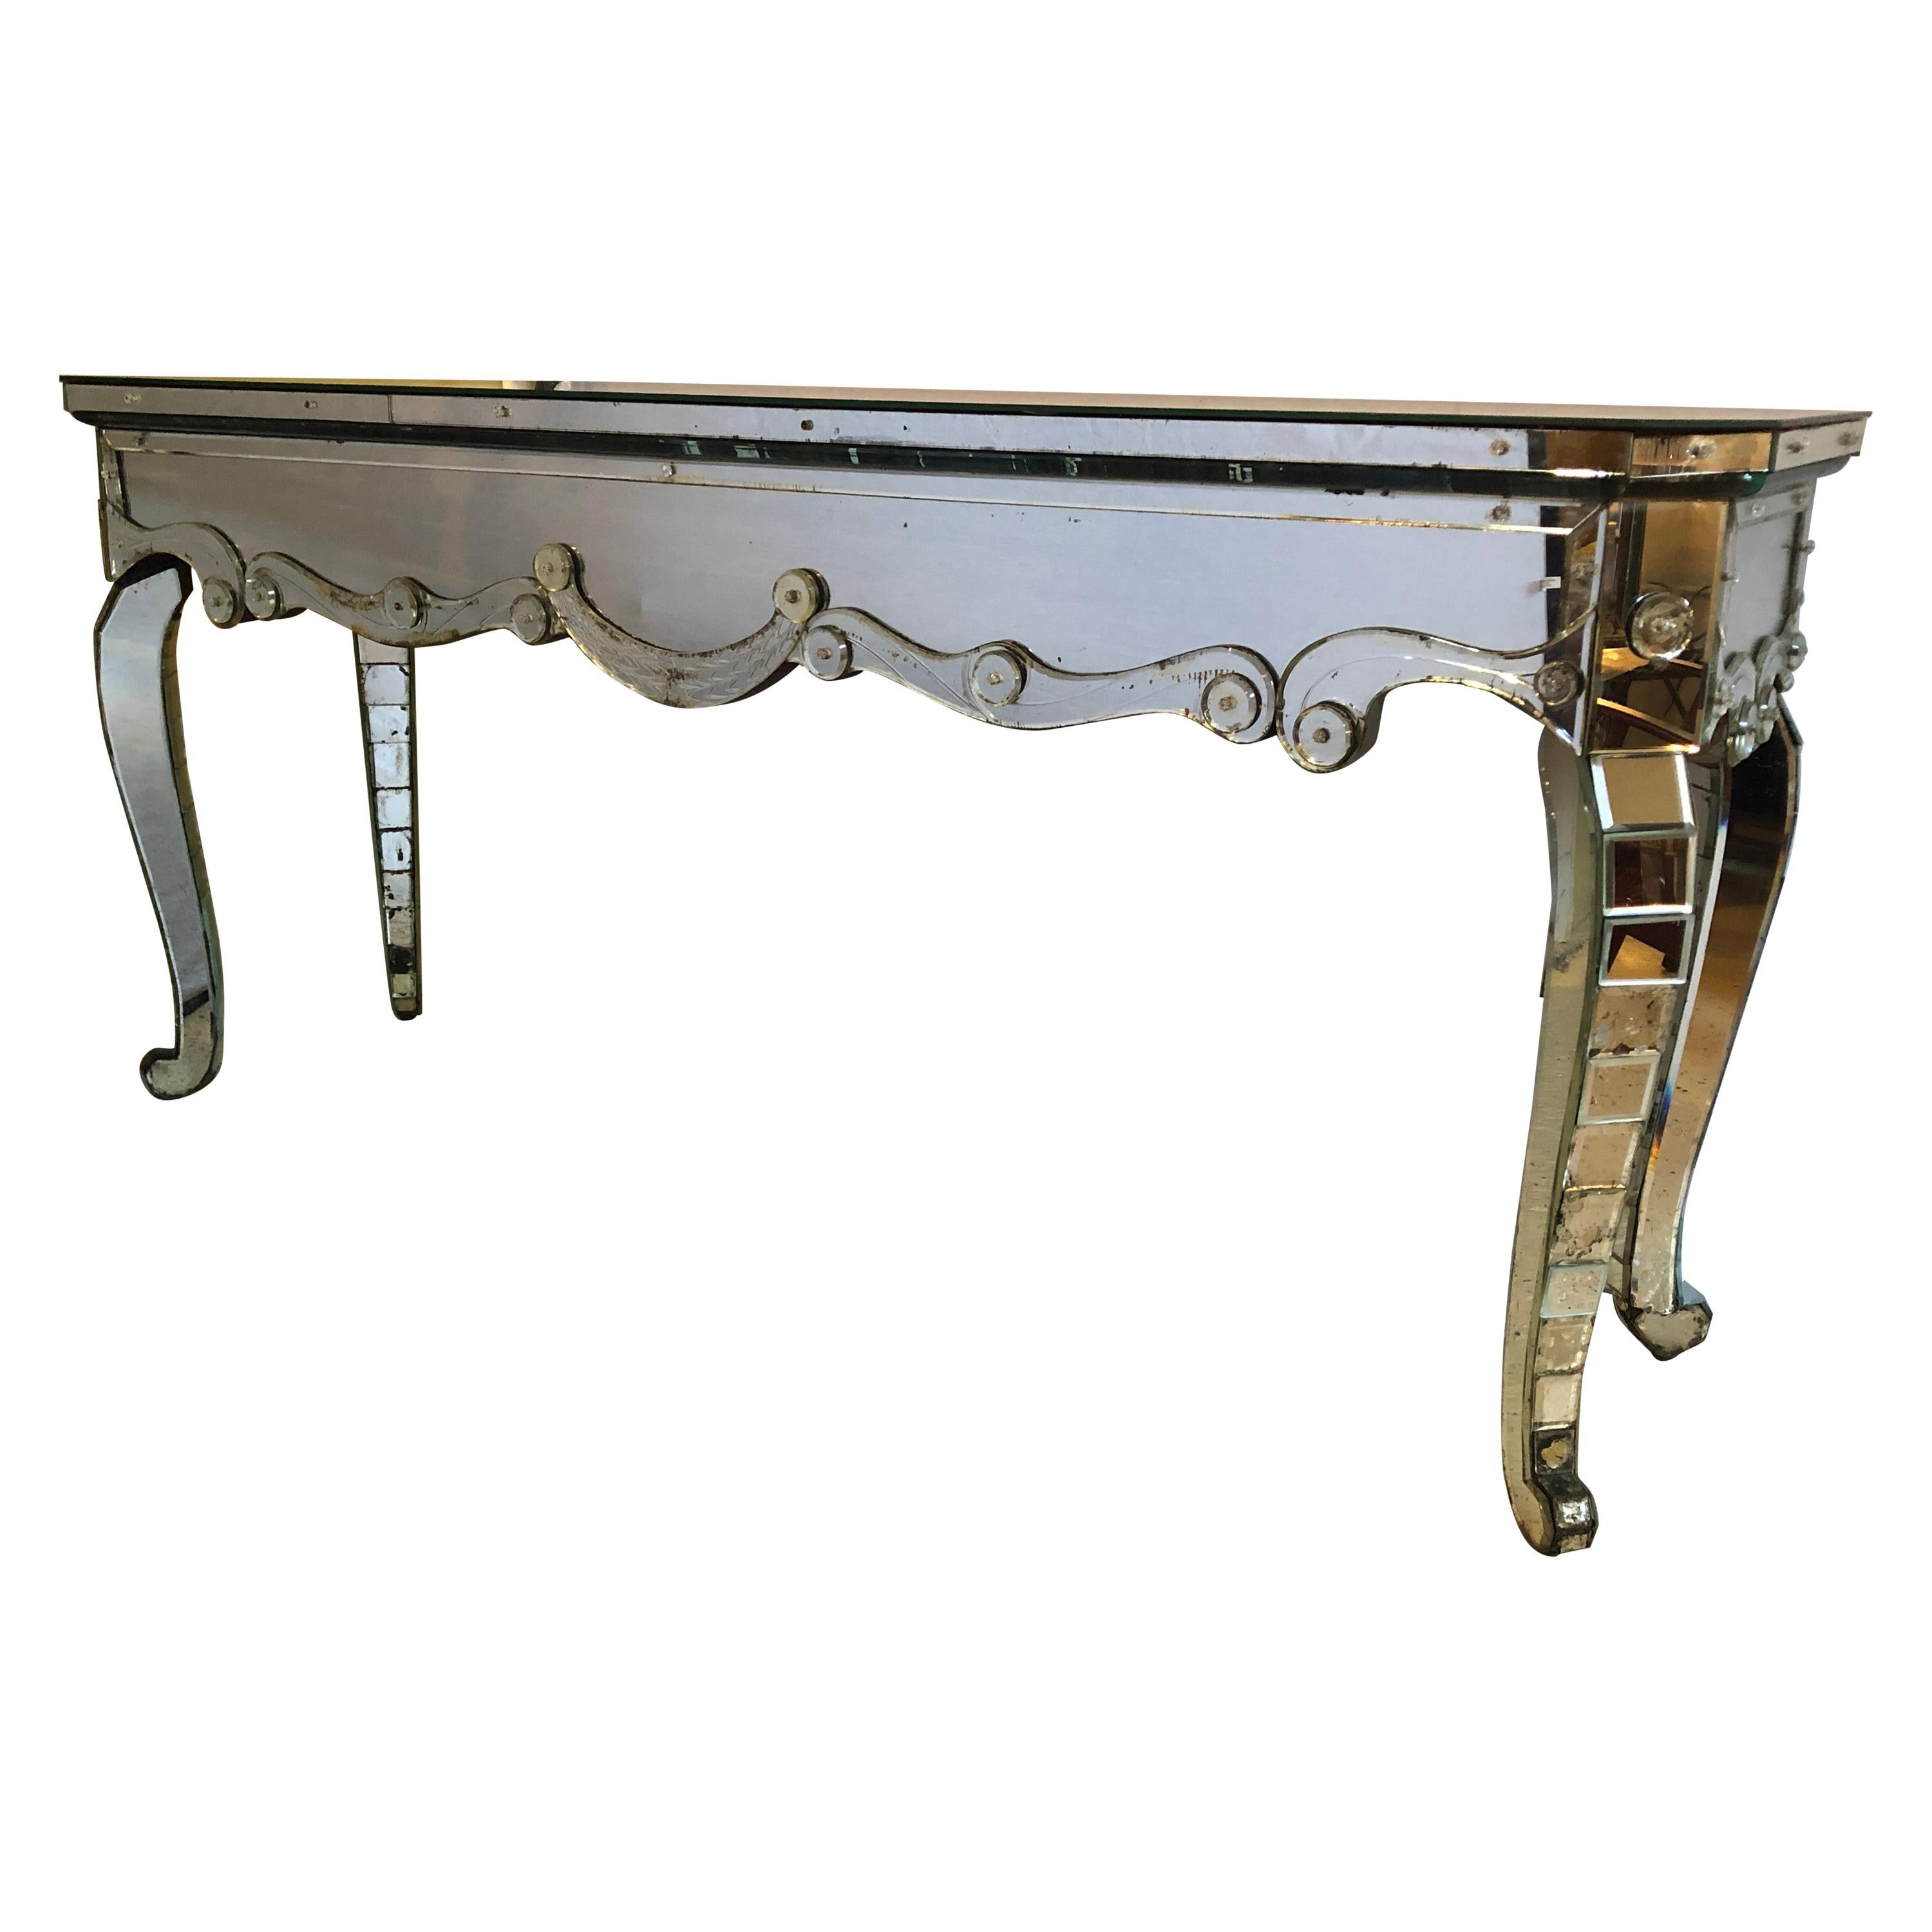 Hollywood Regency Mirrored Console with Applied Decoration and Cabriolet Legs